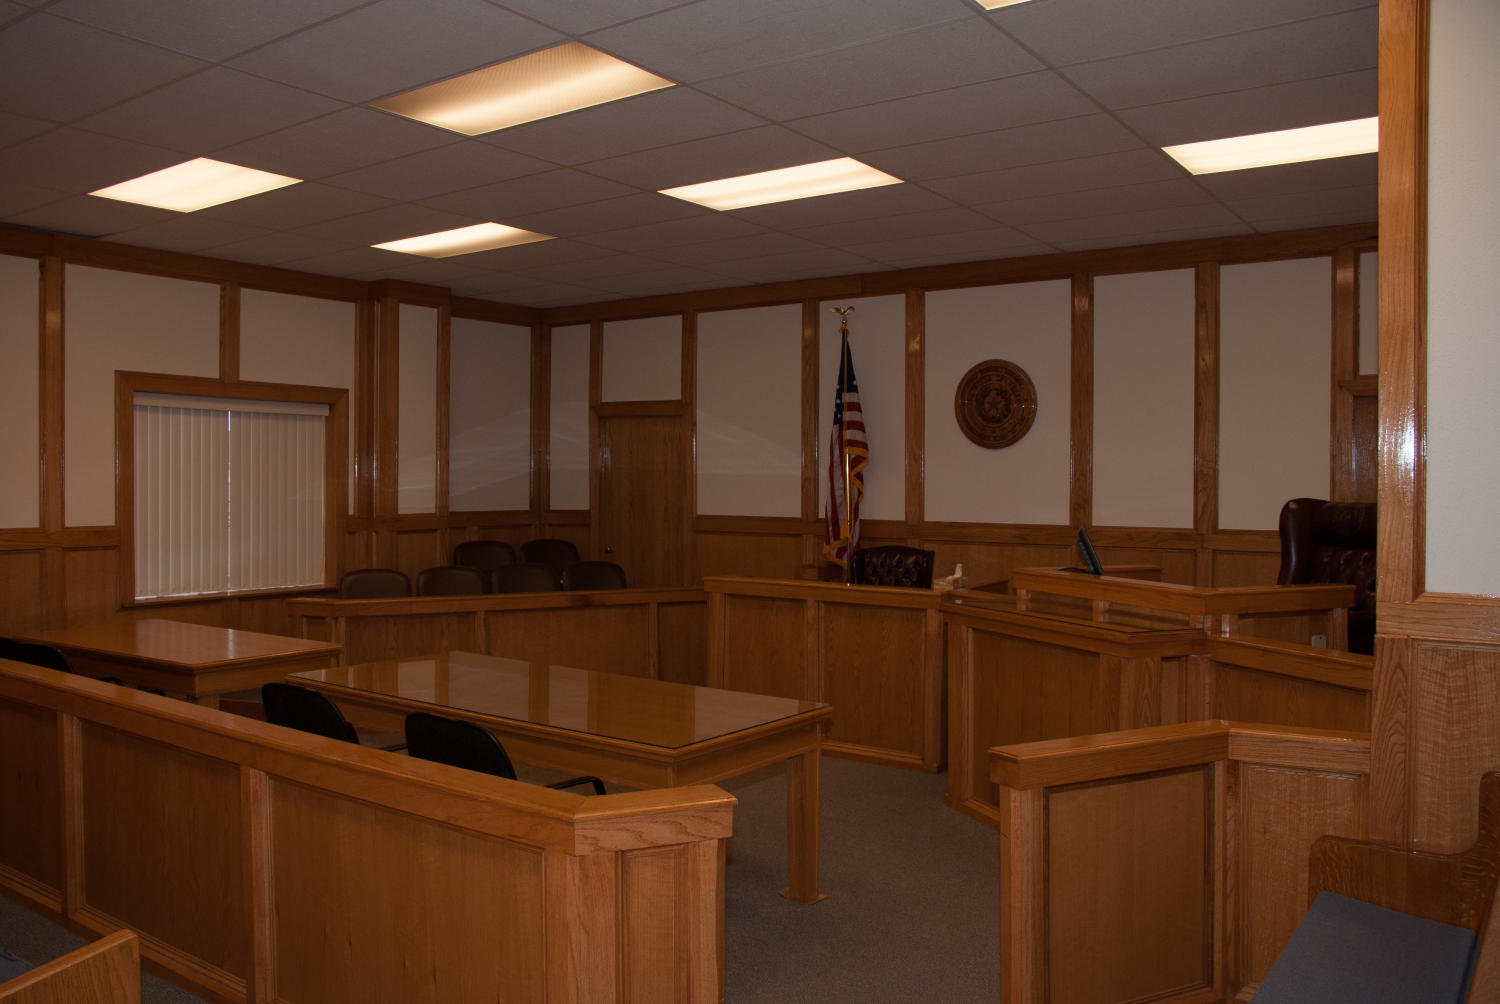 [Interior of a Courtroom]                                                                                                      [Sequence #]: 1 of 1